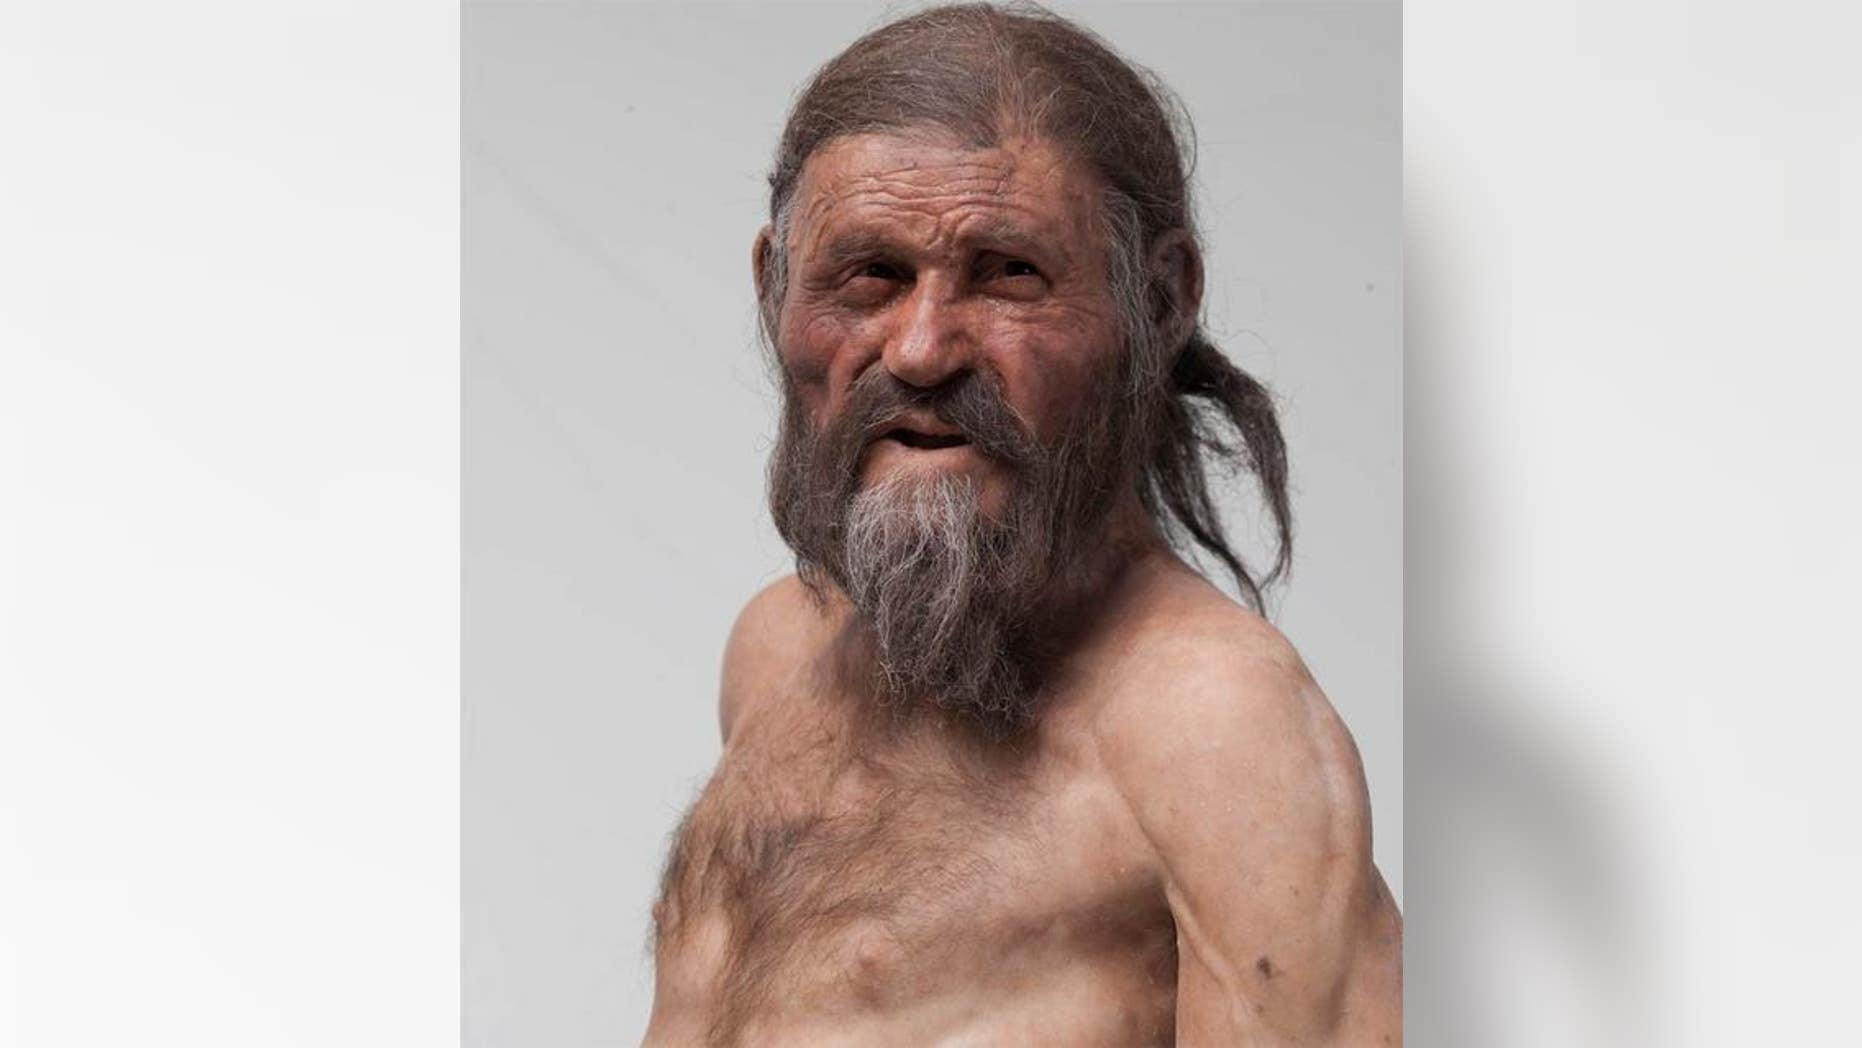 Ötzi the Iceman, a well-preserved mummy discovered in the alps in 1991, showed evidence of calcium buildup in his arteries. Now, new research shows he had a genetic predisposition to heart disease.